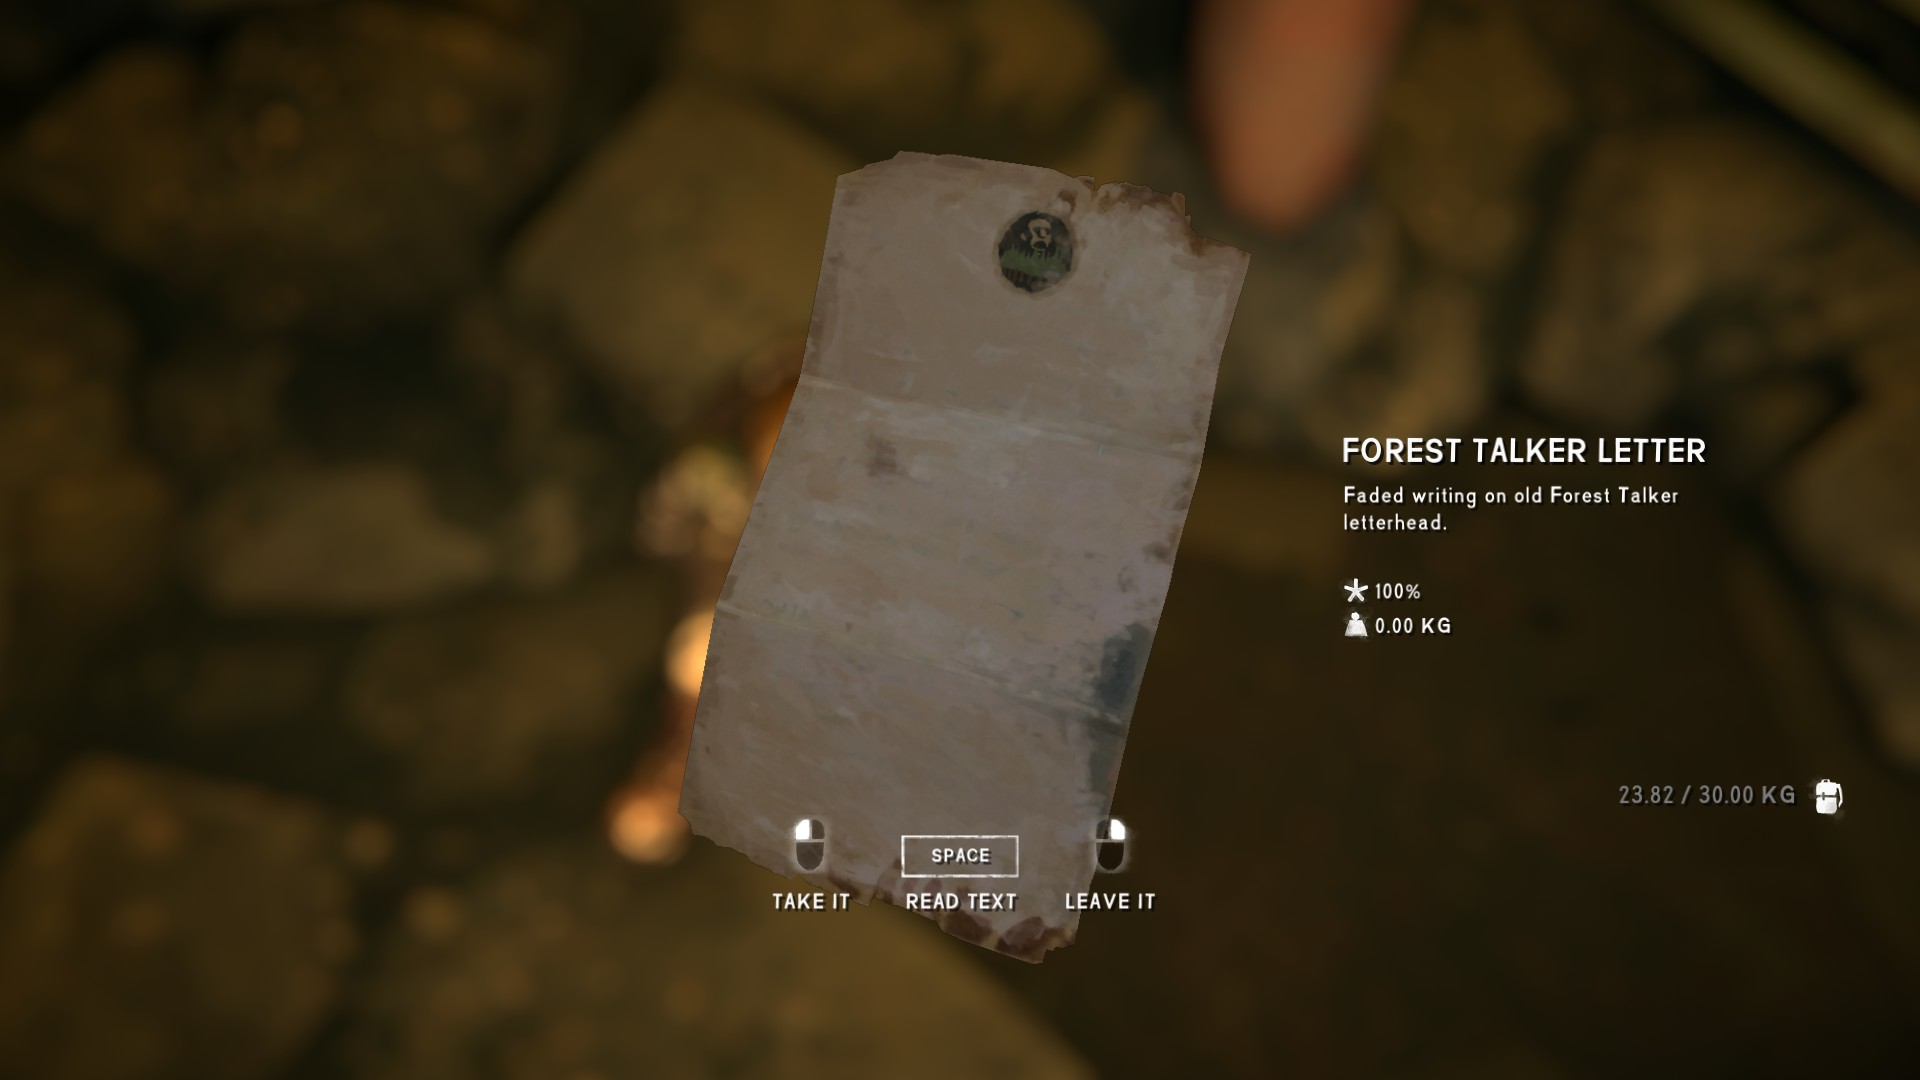 The Long Dark - All Achievements Playthrough & Collectible Items Guide - Forest Talker Cache - E4952A5